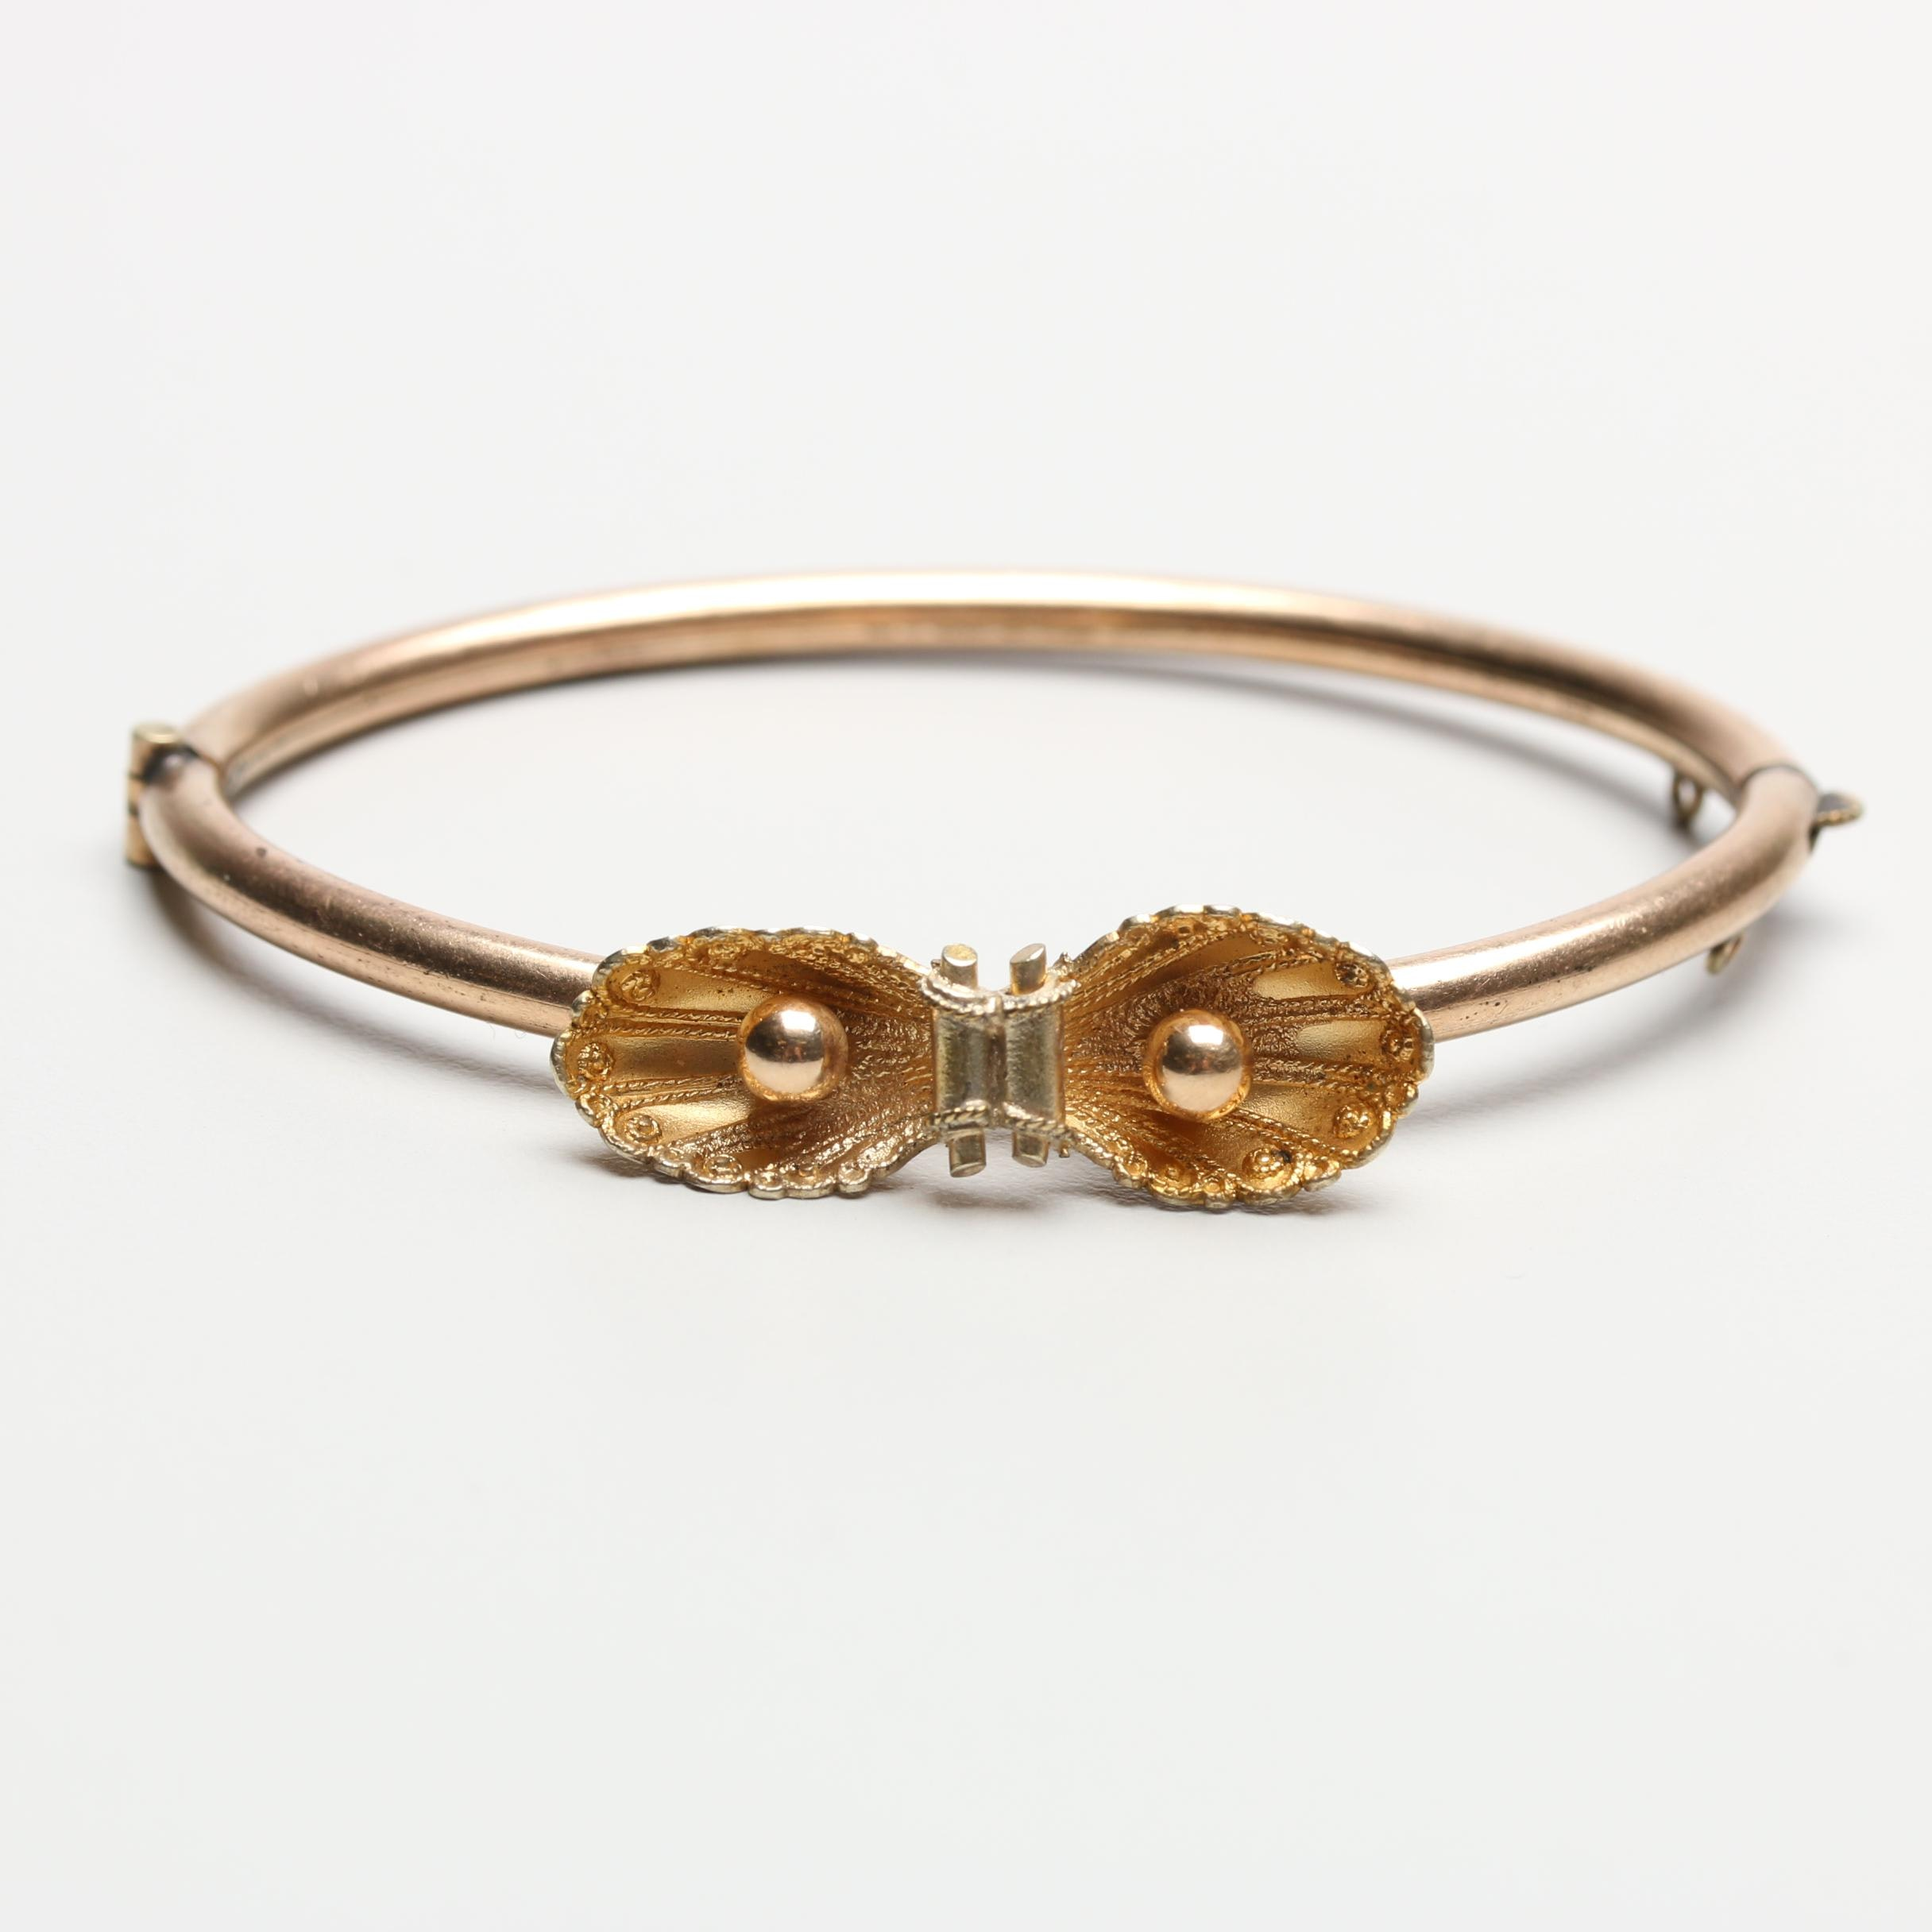 Victorian Gold Tone Hinged Bangle Bracelet